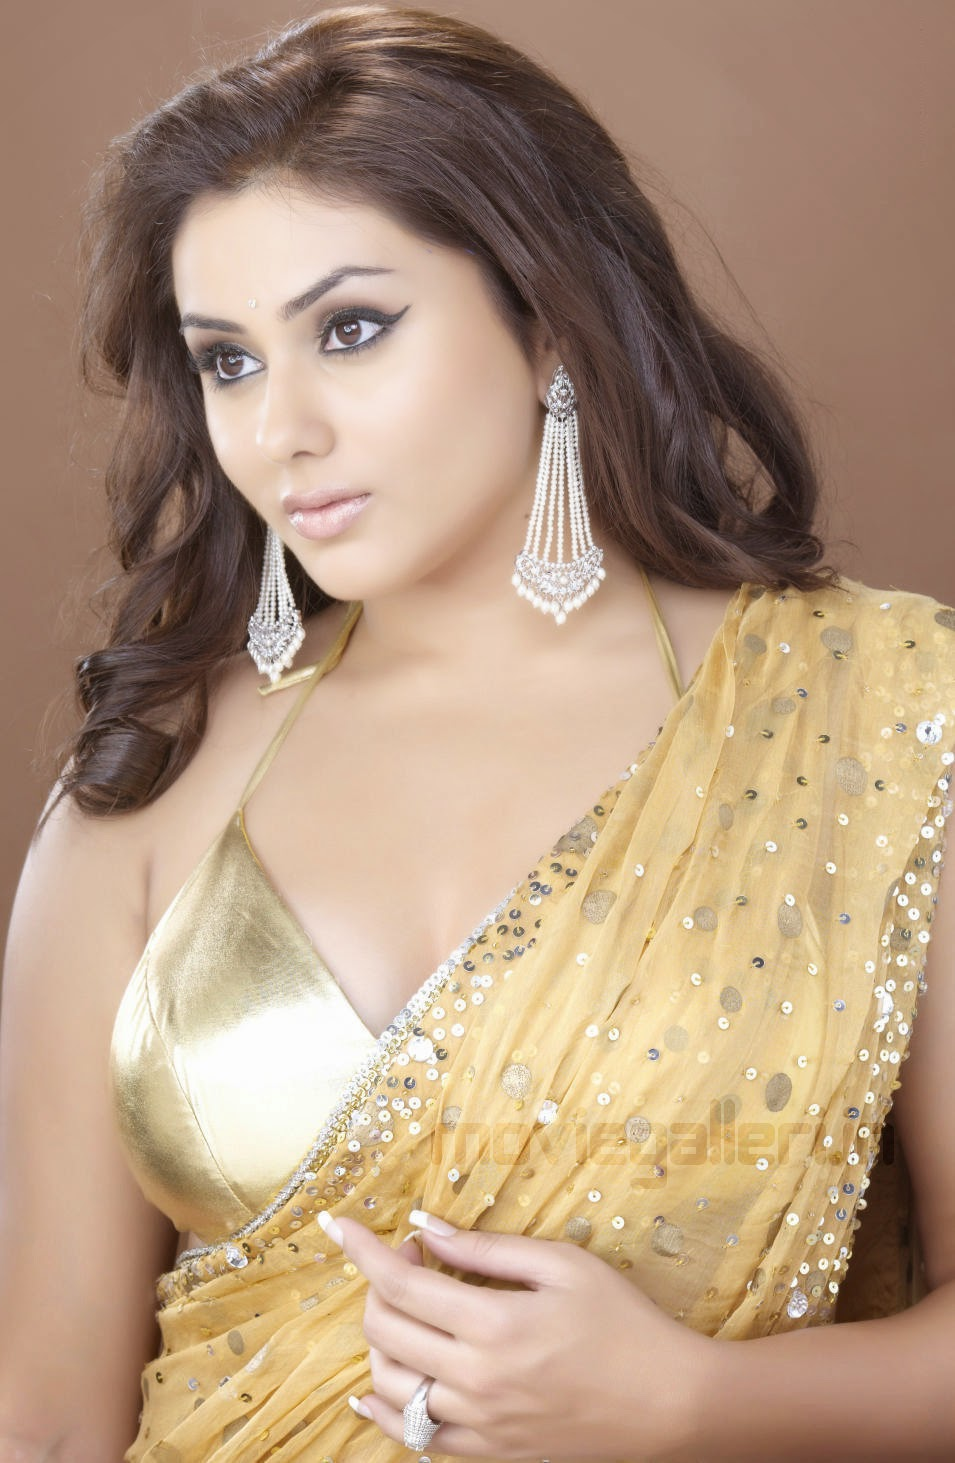 shahnaz online photo gallery best namitha hot hd wallpapers